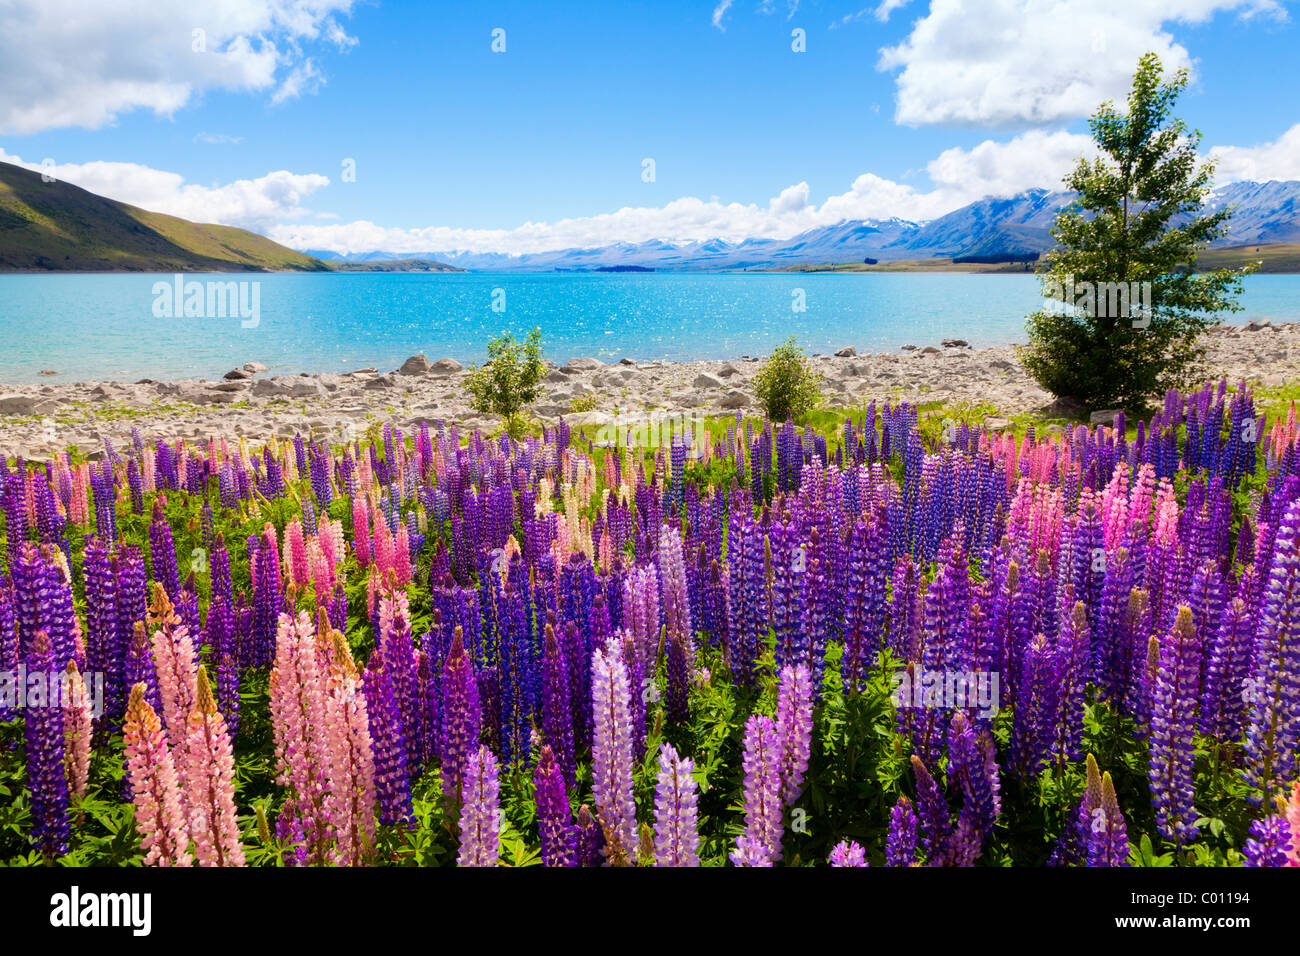 μακελειο νεα ζηλανδια News: Lupin Wildflowers On The Shore Of Lake Tekapo In New